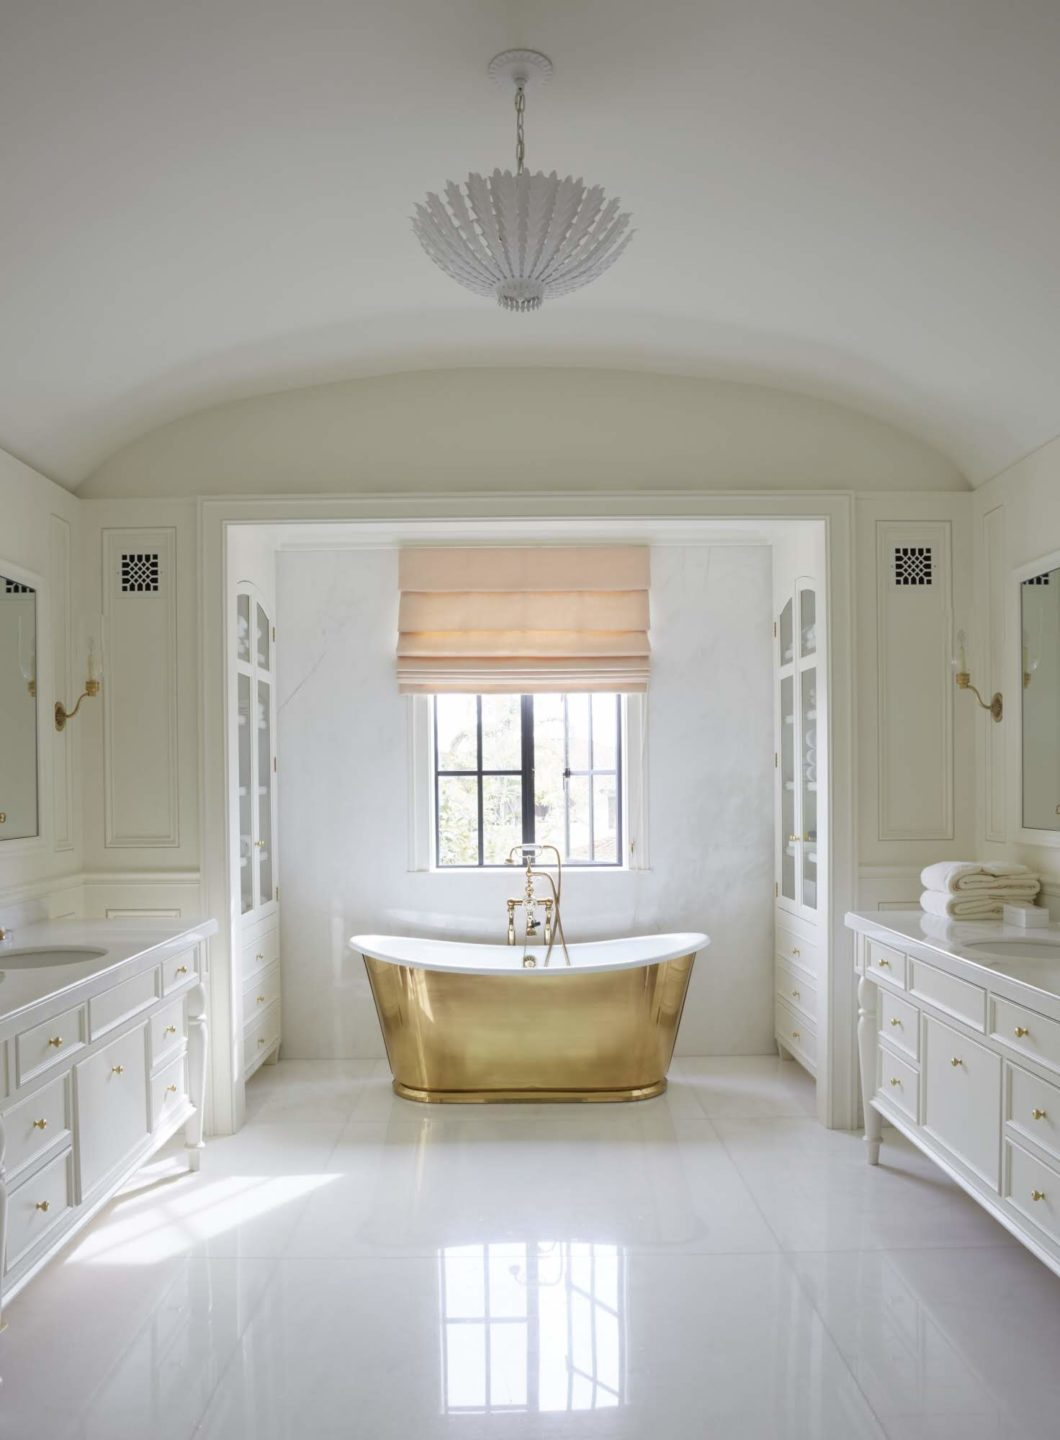 William_Hefner_casa_del_mar_projects_Bland__Bath__02__Master